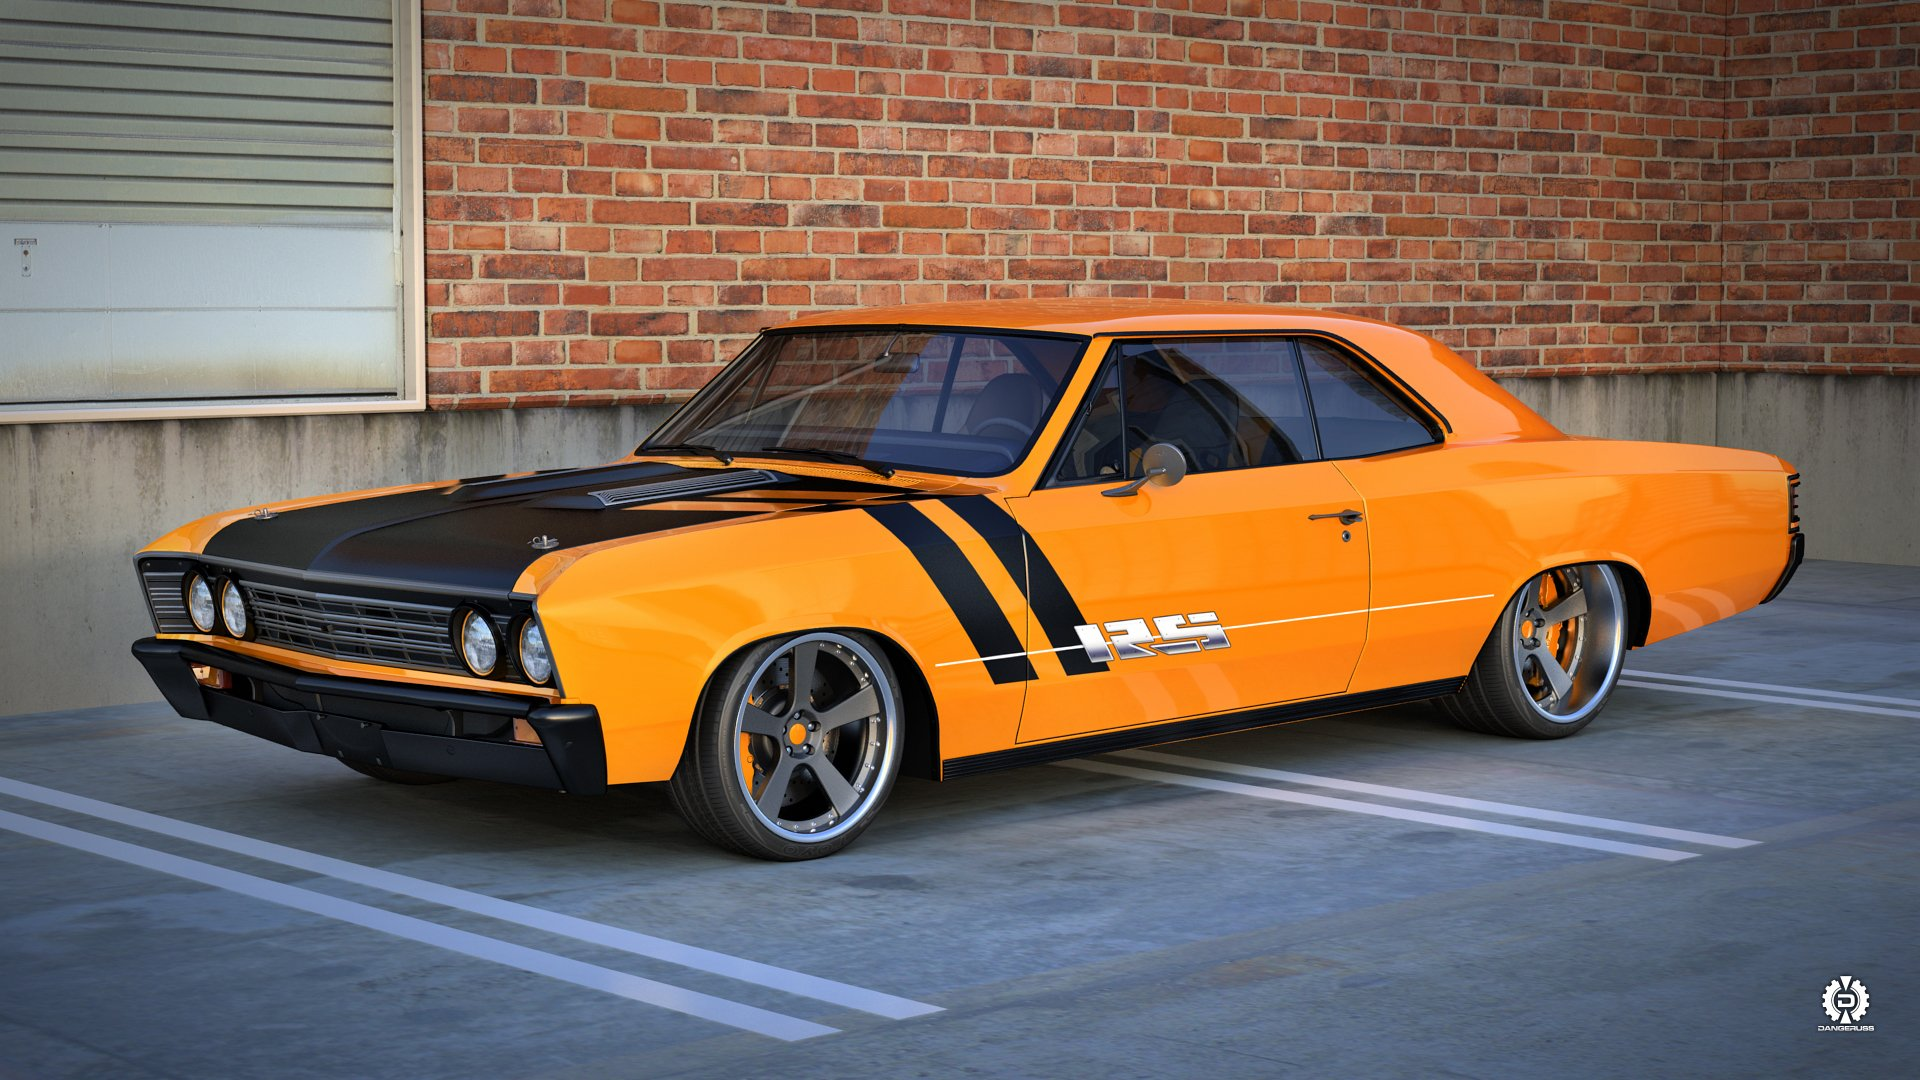 Chevelle chevrolet muscle car render dangeruss tuning hot rod rods ...